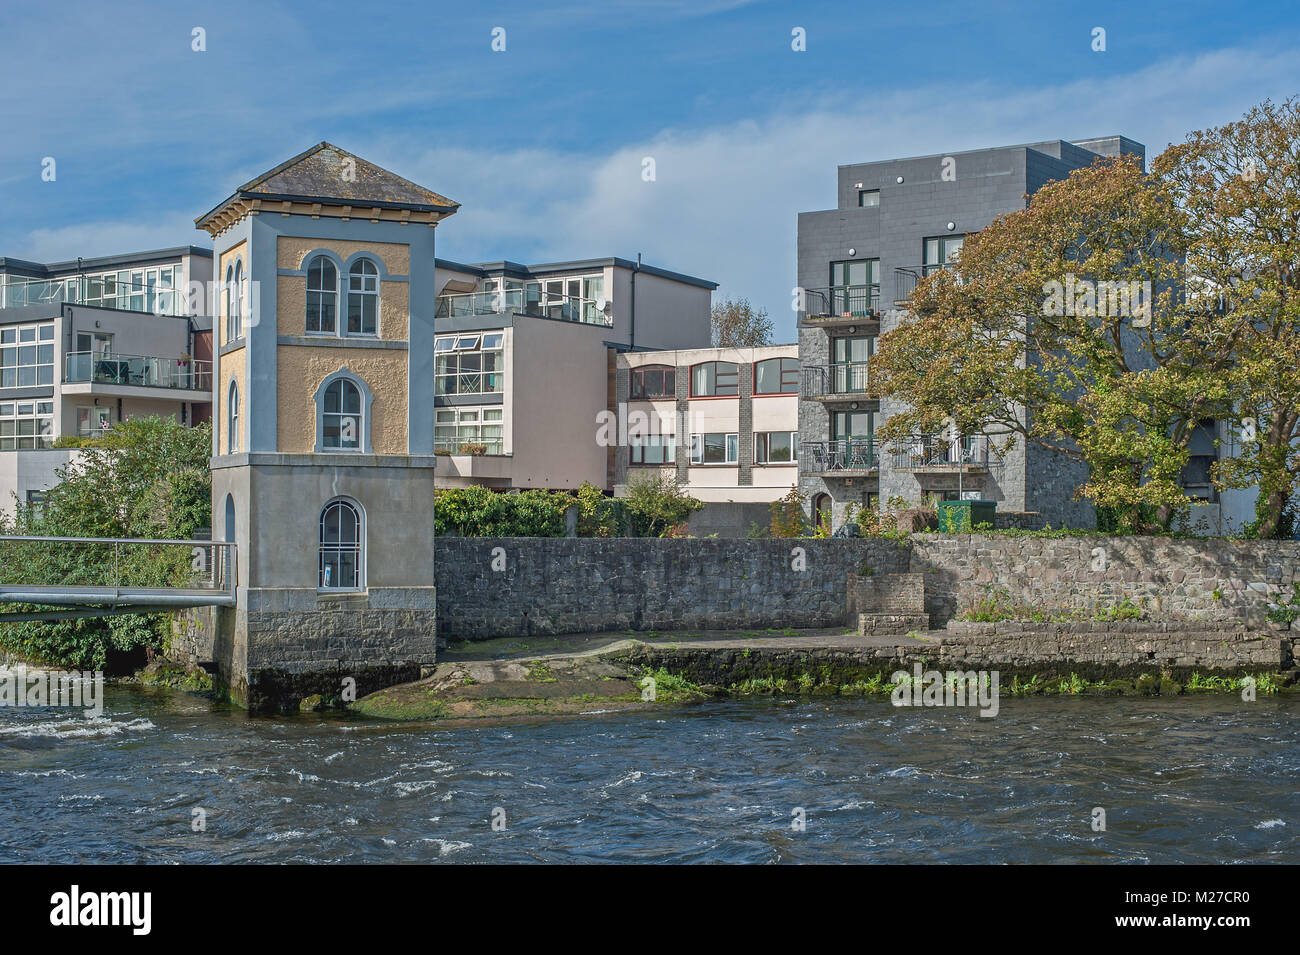 Apartment complex in Galway Ireland - Stock Image